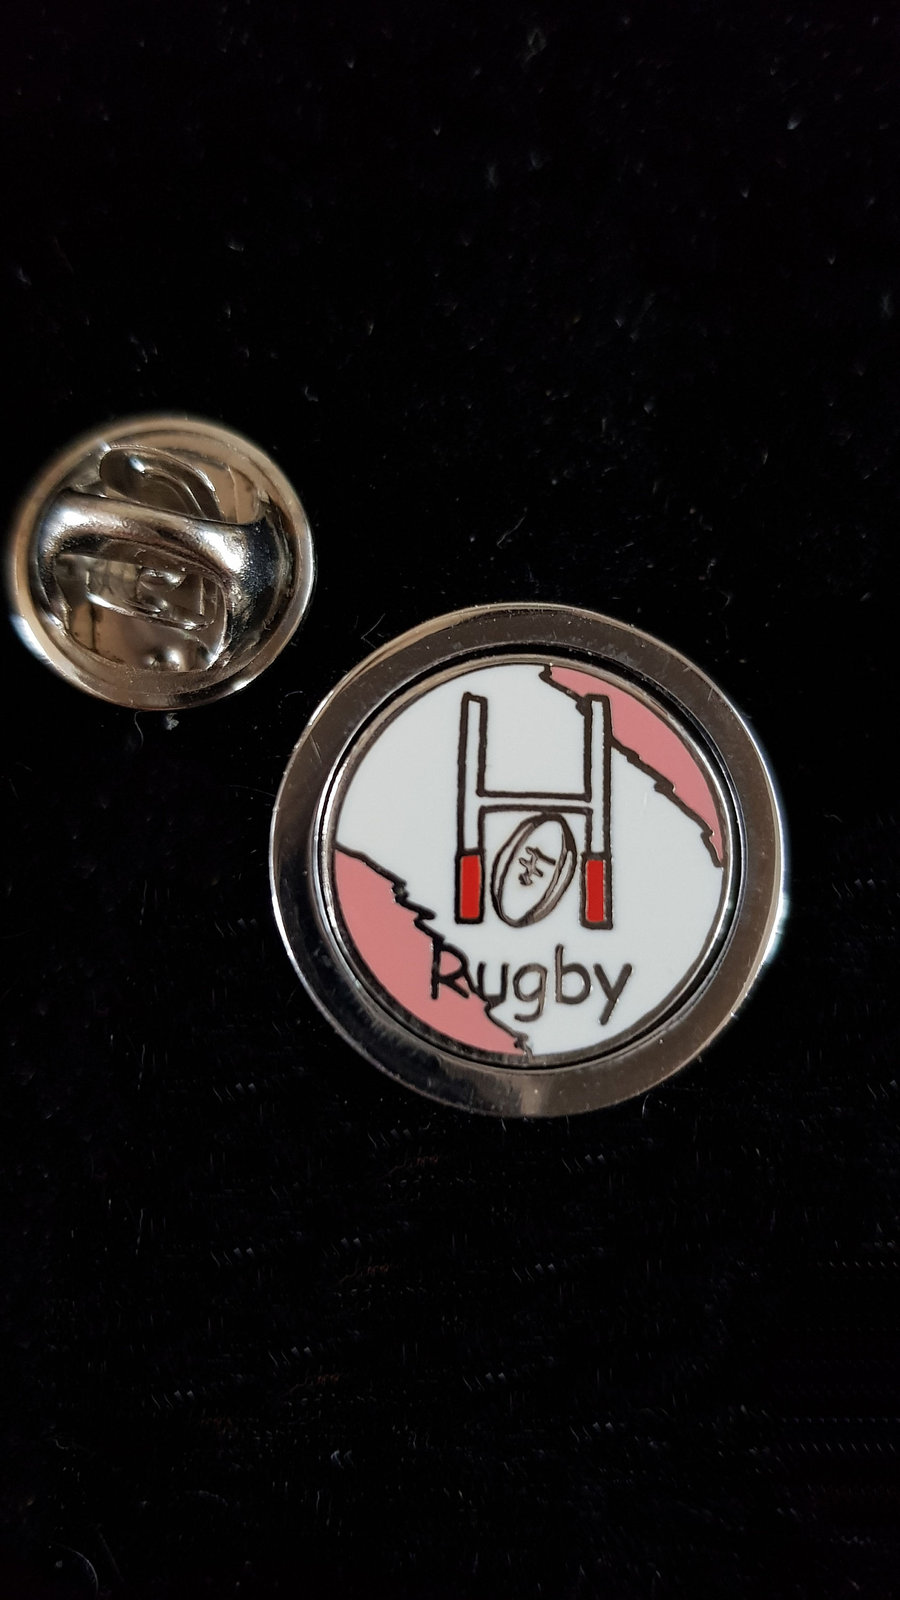 rugby posts Lapel Pin tie pin, Lapel Pin Badge, in gift box